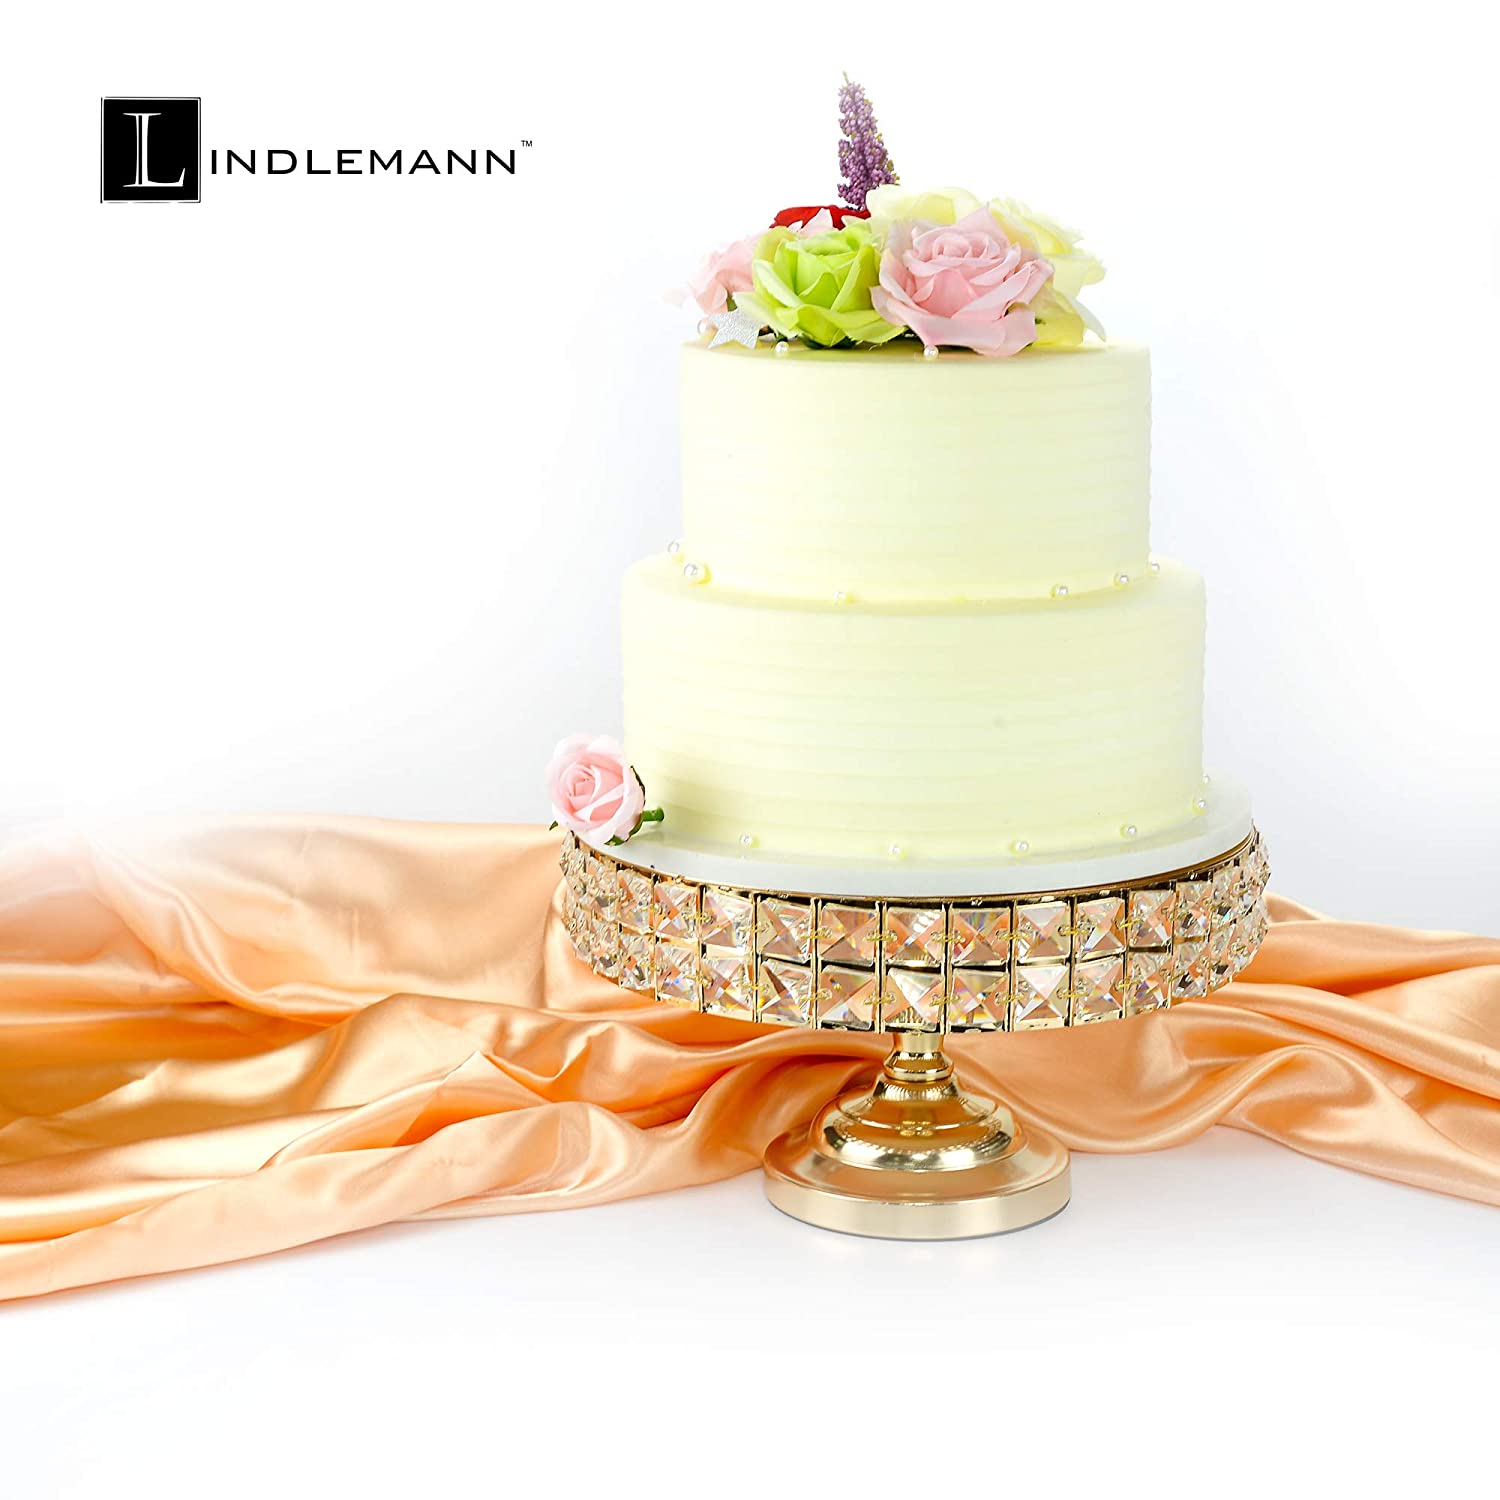 Round Cake Stands with Genuine Mineral Crystals Three Bonus Cake Spatulas Can be Used Individually or Stacked 10 inches + 12 inches + 13.5 inches, Gold Lindlemann Three Piece Metal Cake Stand